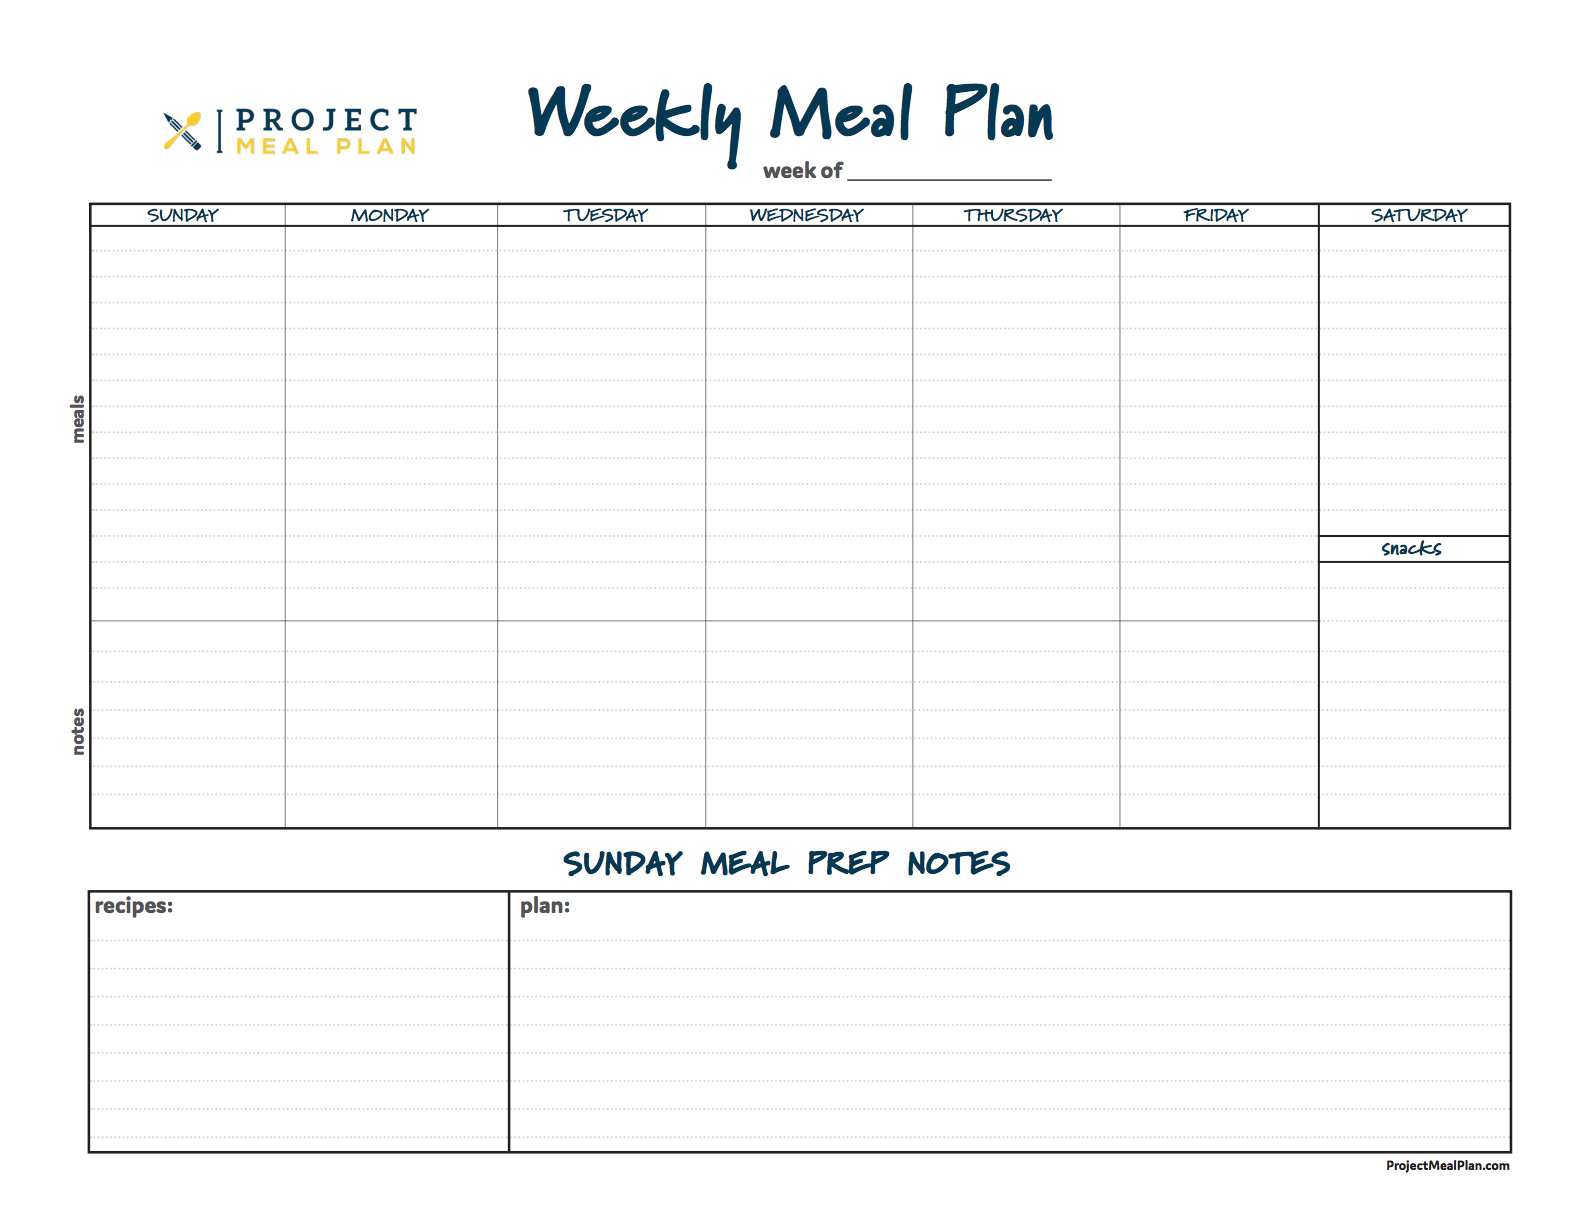 Daily Meal Planner Template from projectmealplan.com